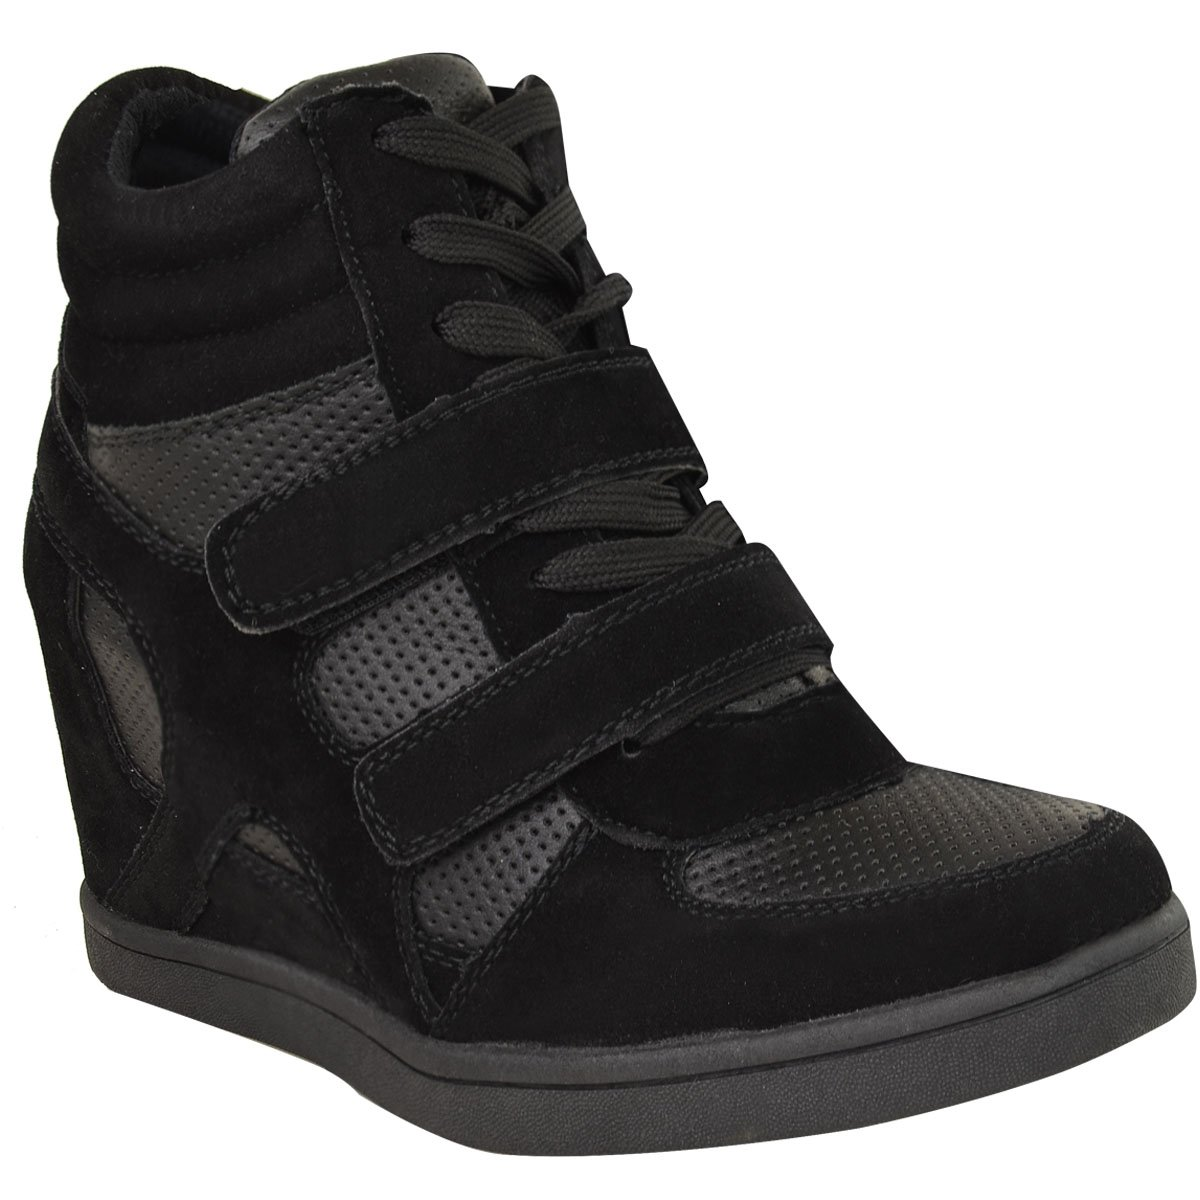 black wedge trainer boots